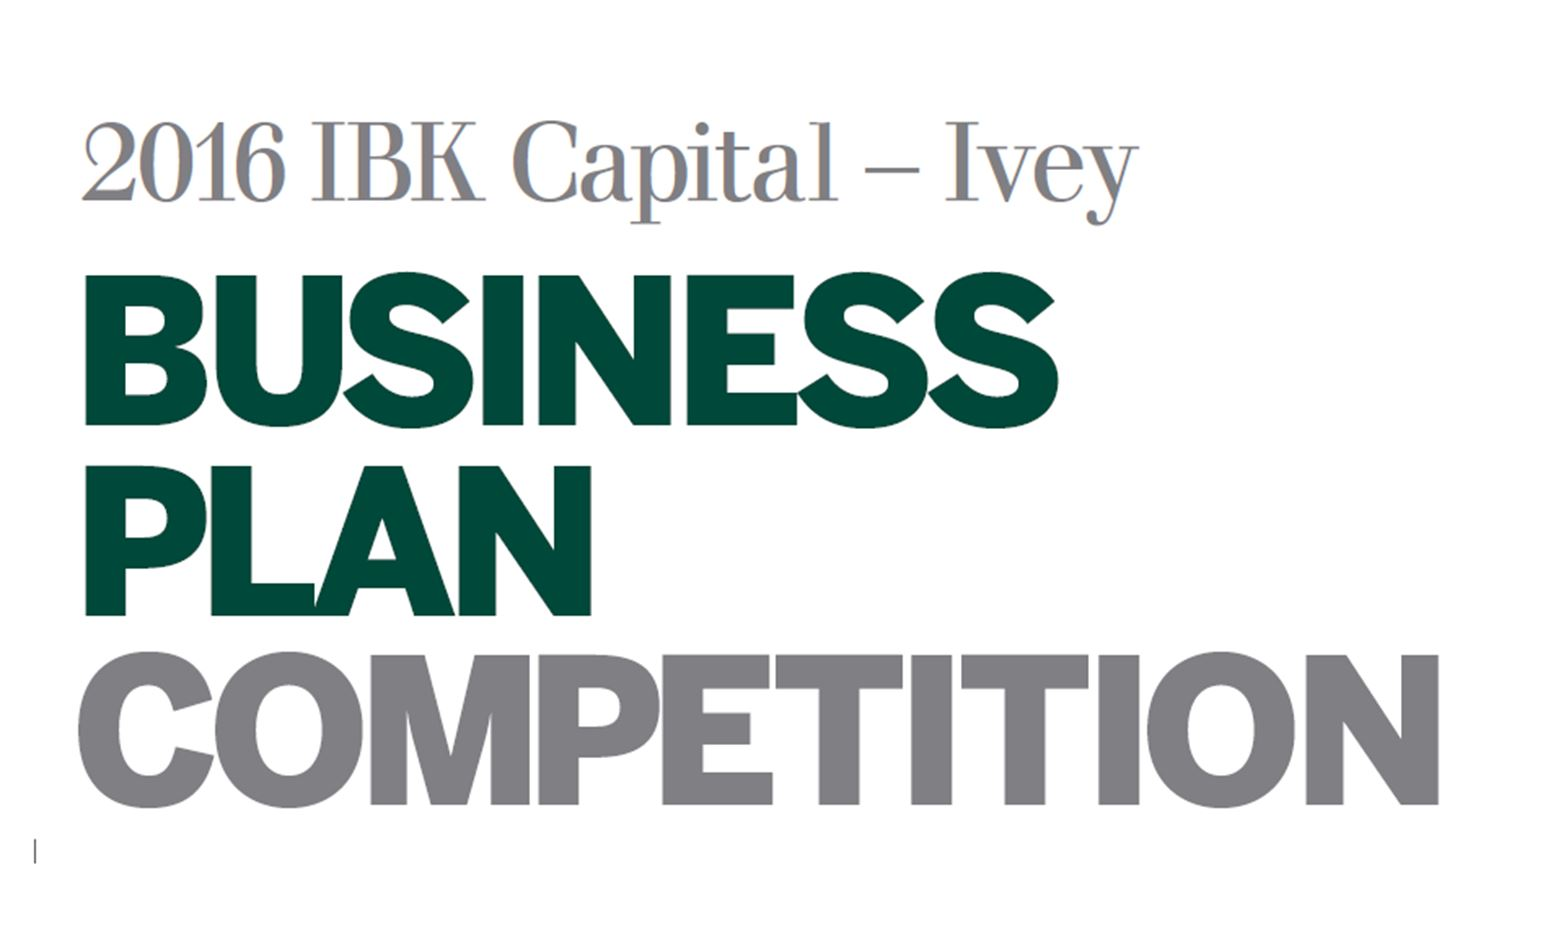 2016 IBK Capital - Ivey Business Plan Competition